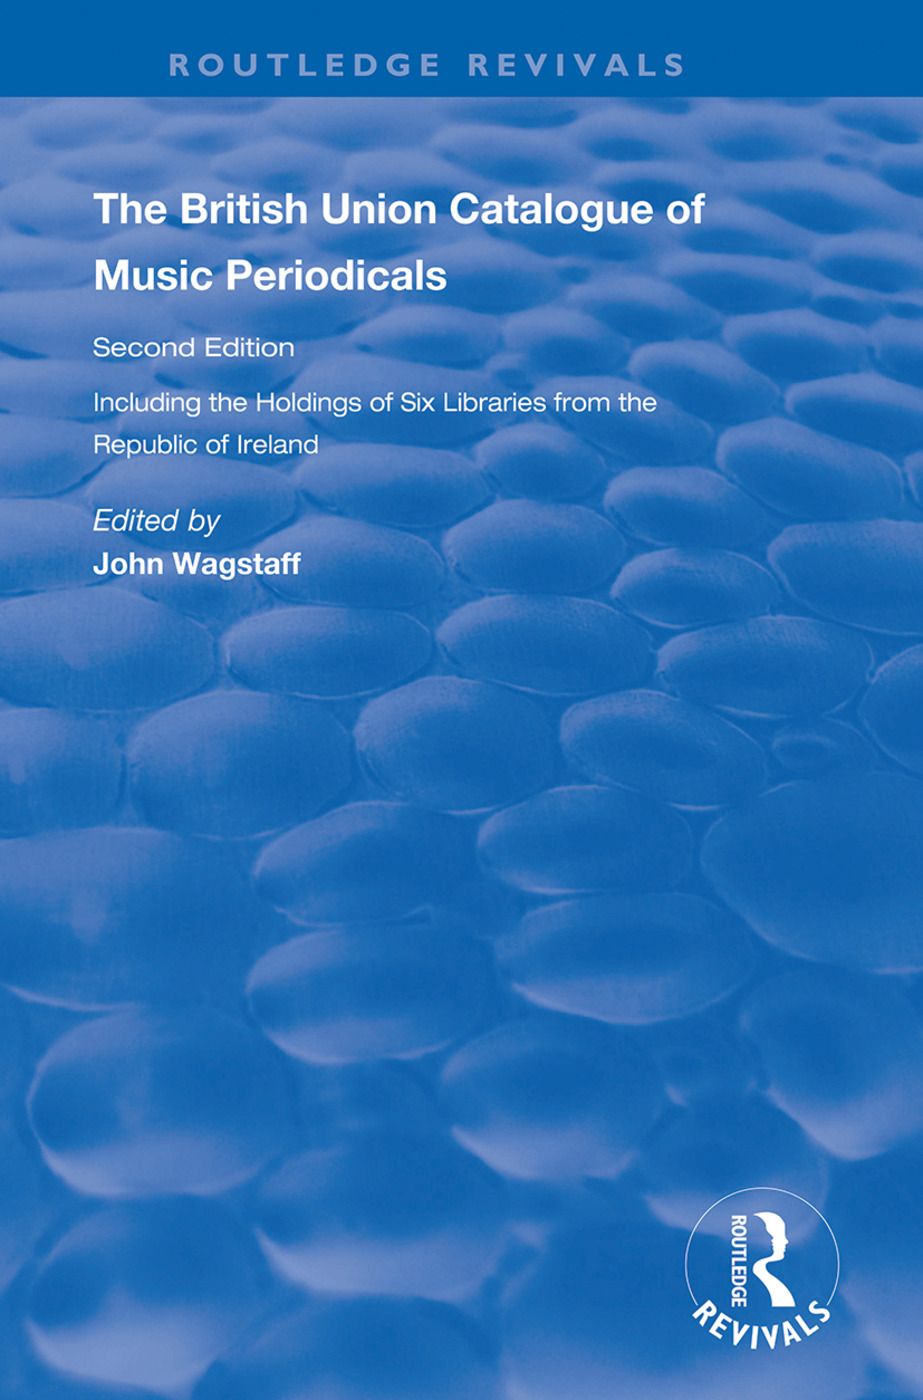 The British Union Catalogue of Music Periodicals book cover